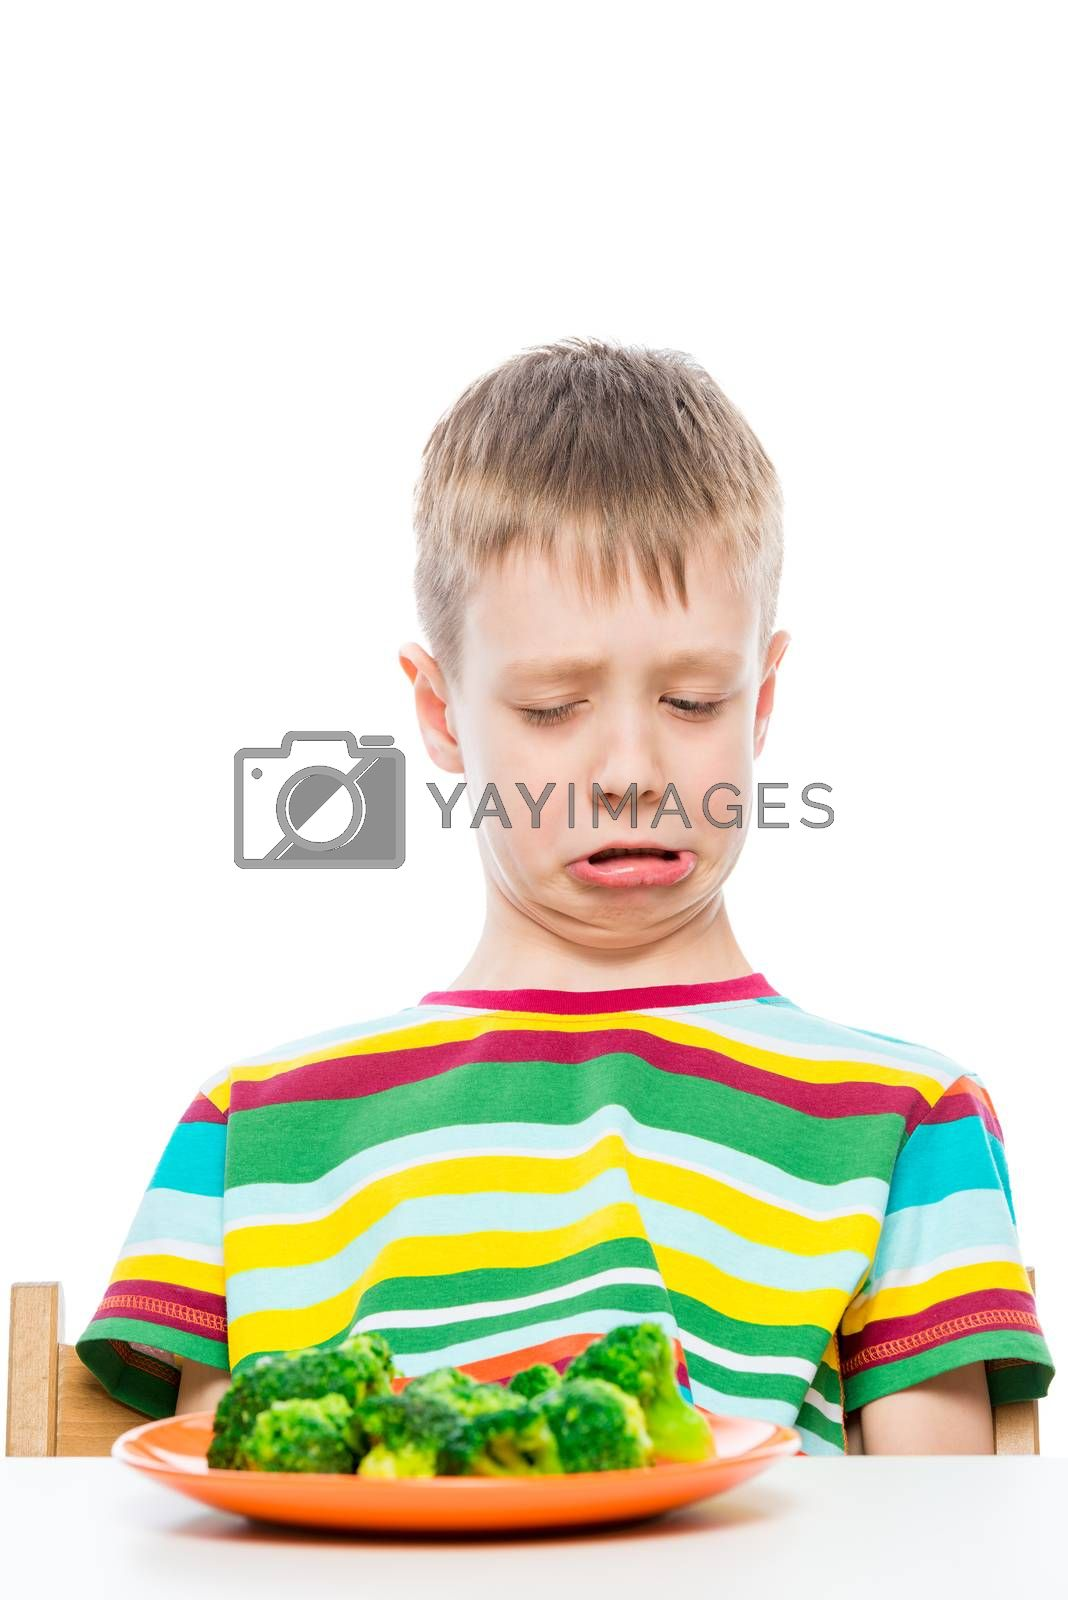 boy with disgust looks at a plate of broccoli, portrait on white background isolated